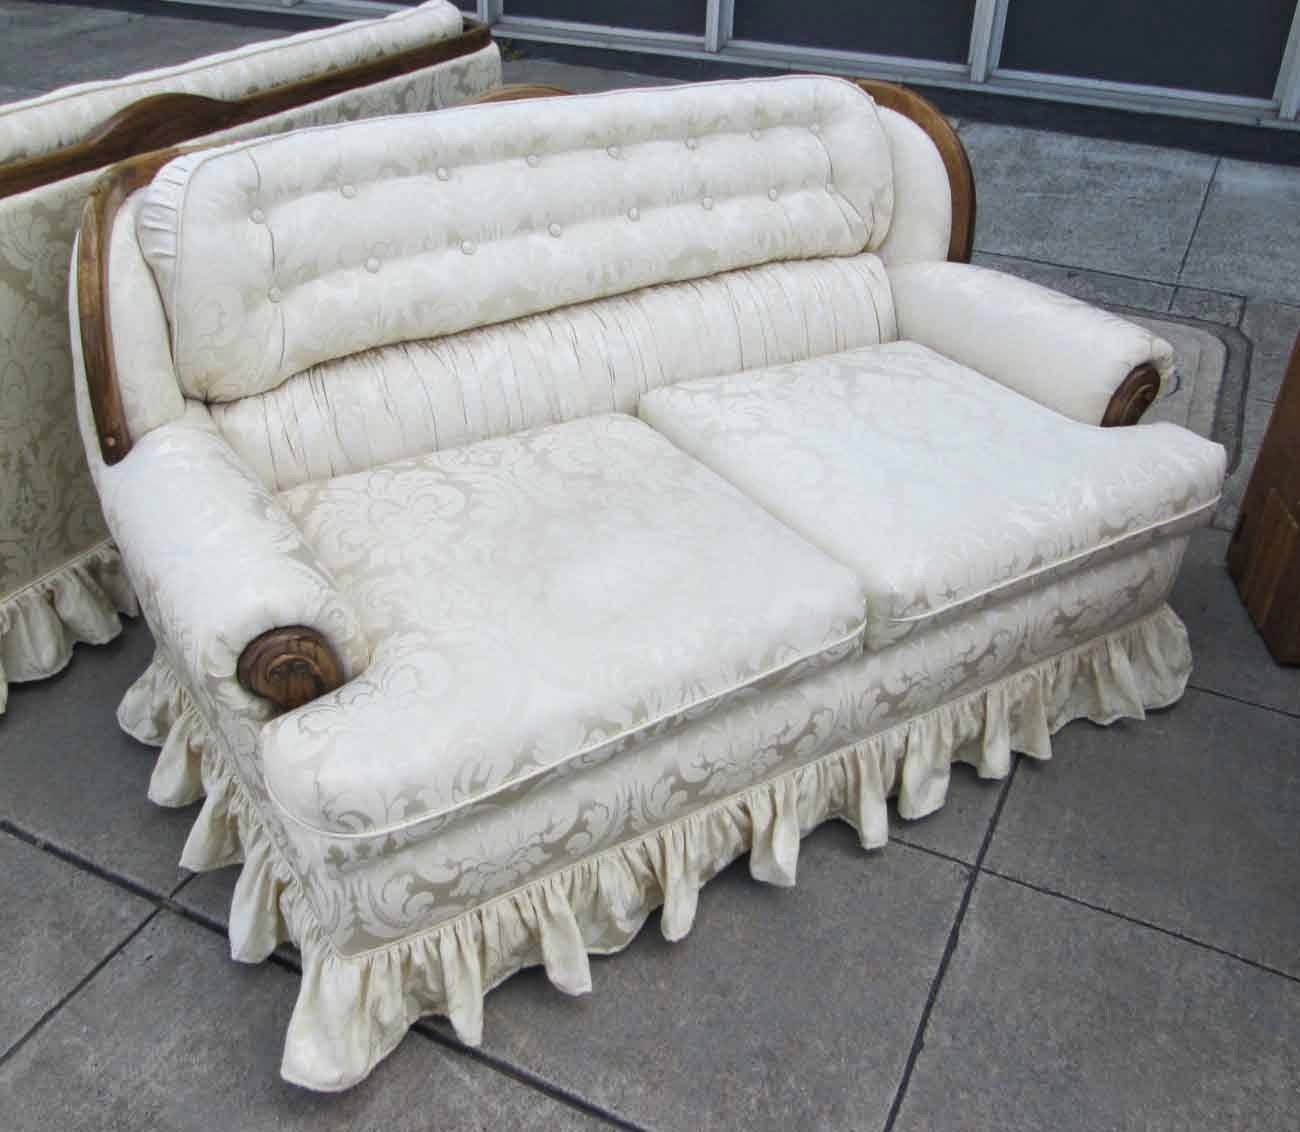 early american style sofas wicker and chairs uhuru furniture collectibles sold